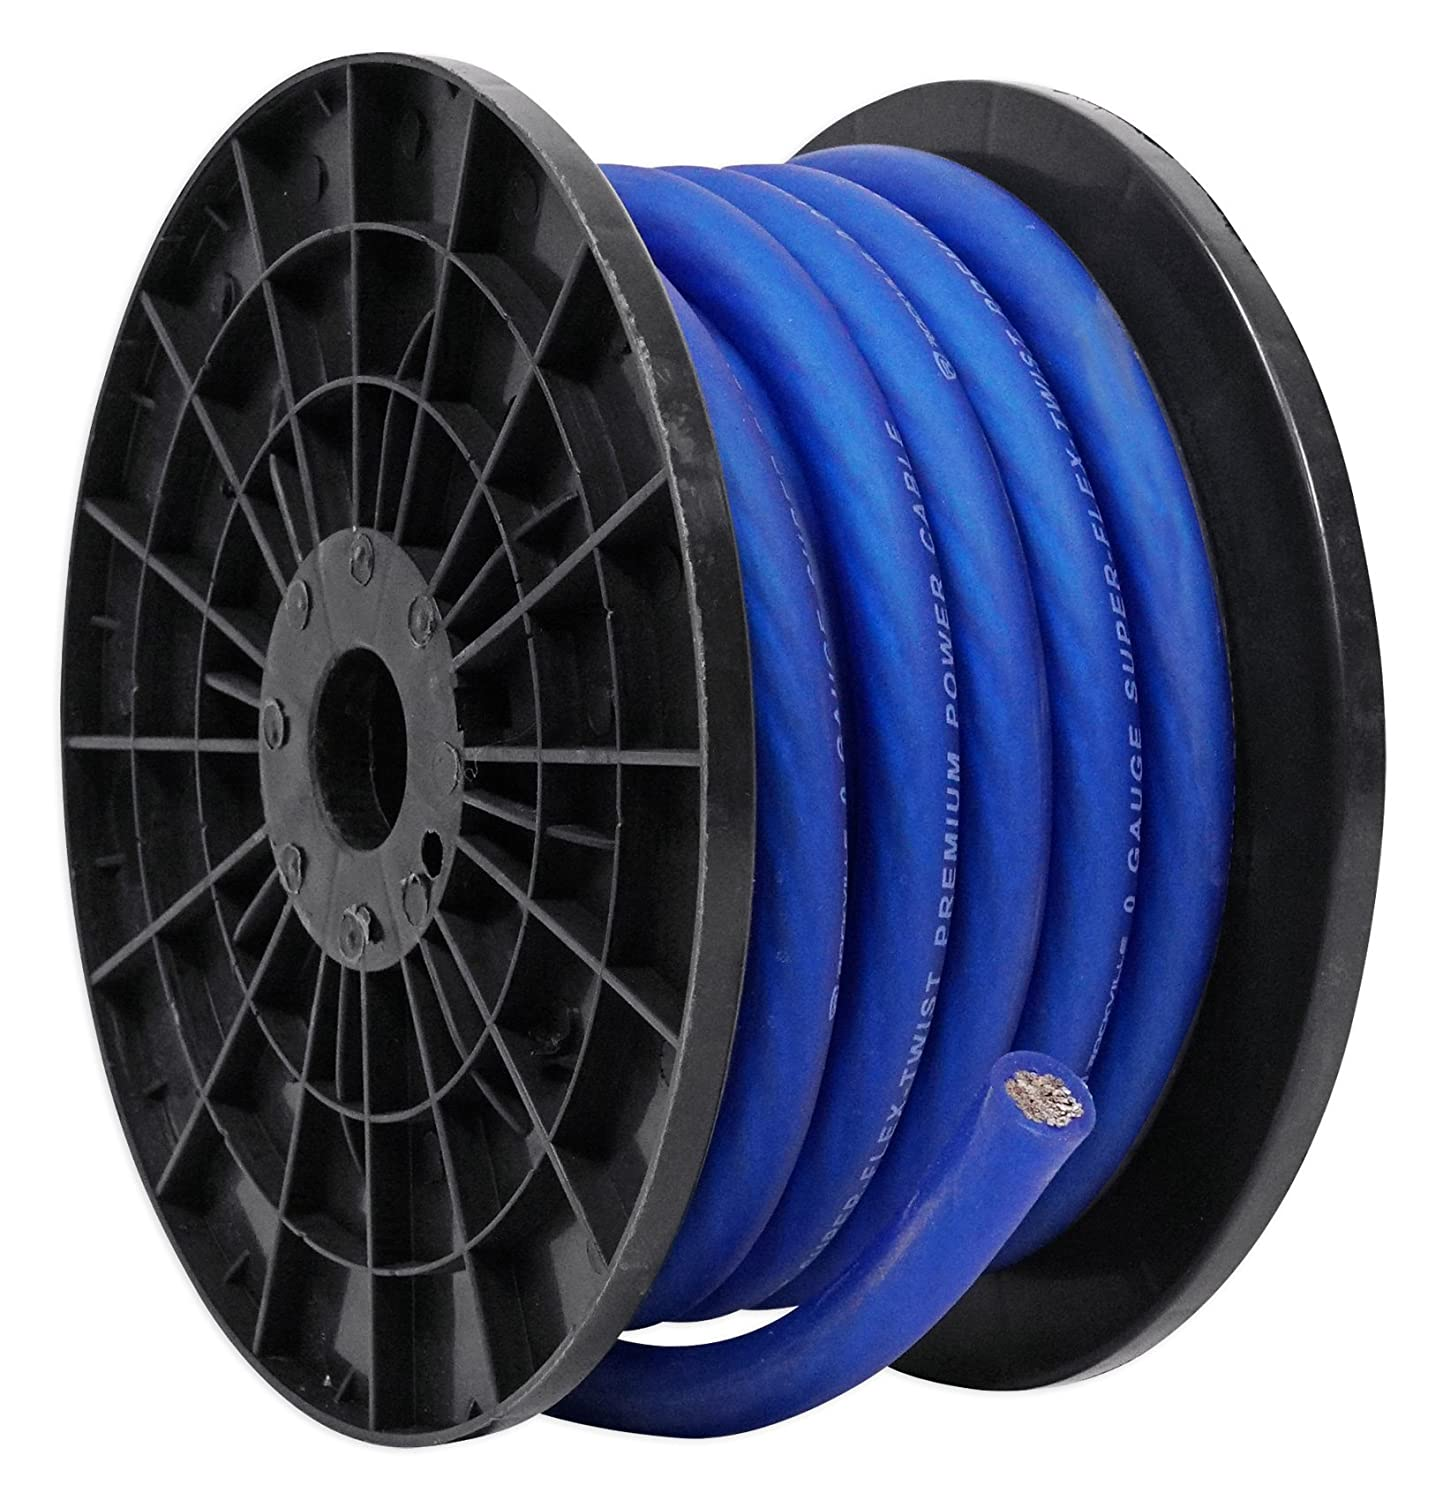 Rockville R14G125MS-BL Blue 100 Foot Spool Marine/Boat Waterproof 14 AWG Speaker Wire Audiosavings R14G100MS-BL